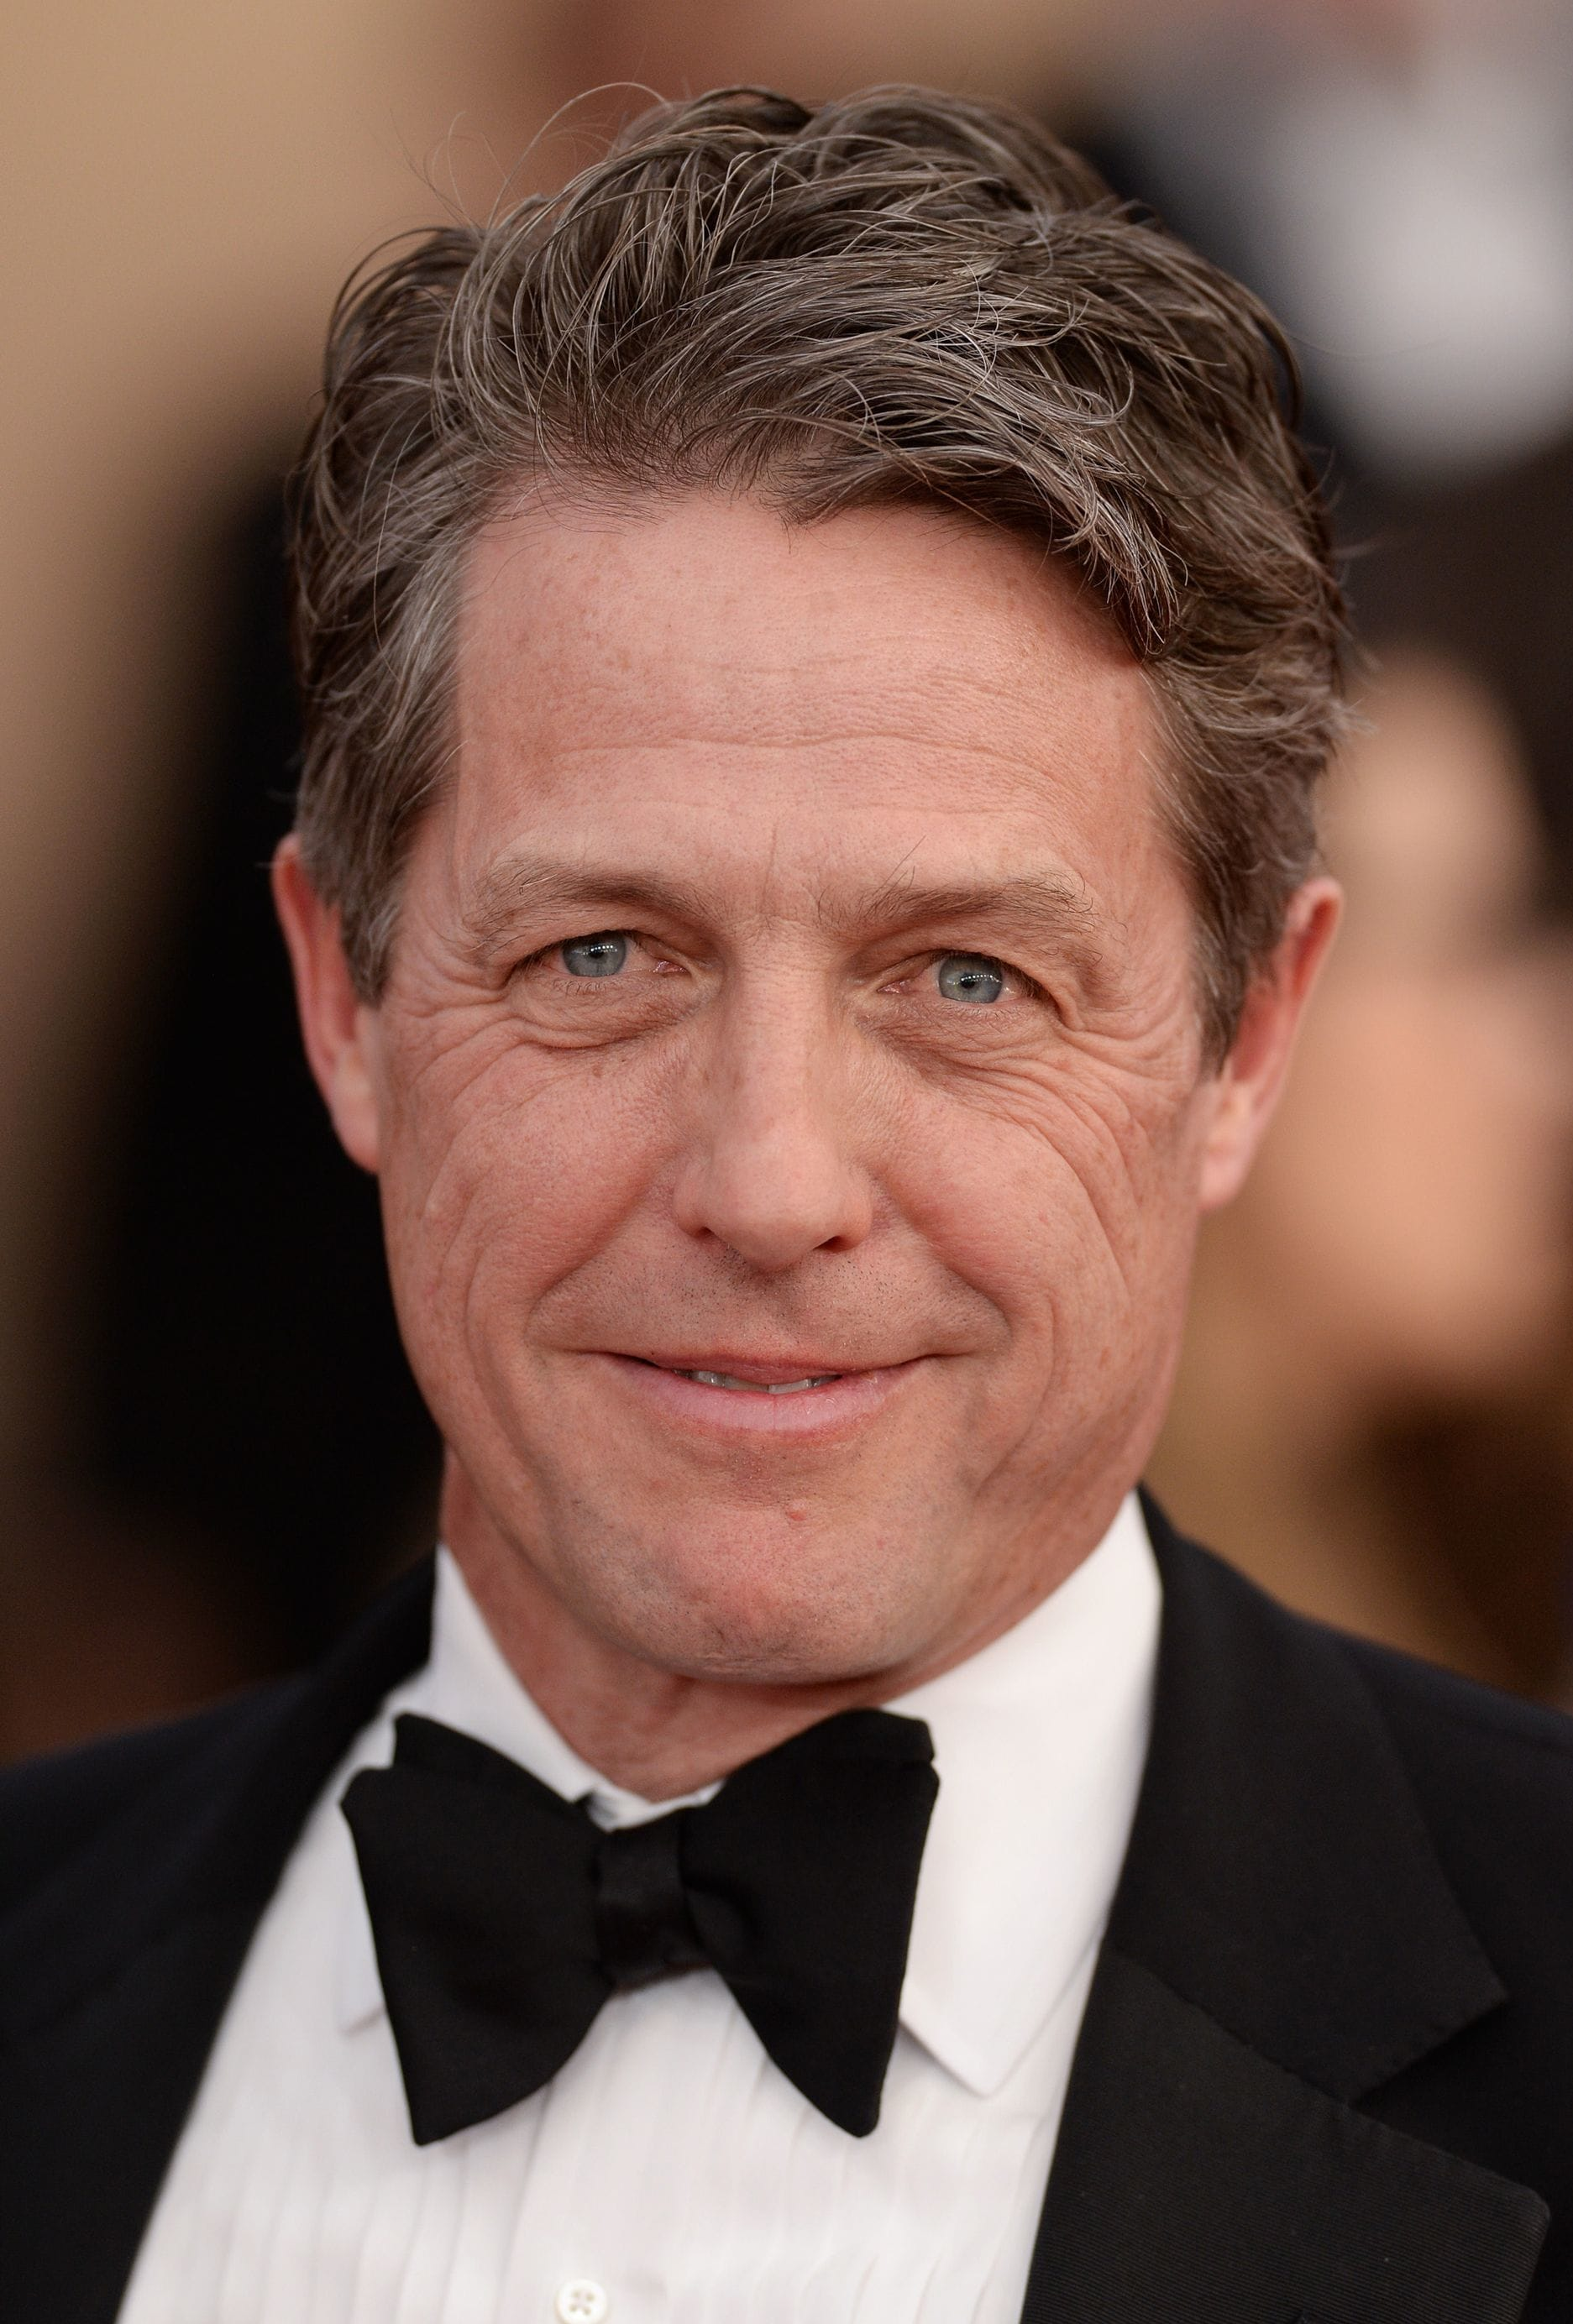 Hairstyles for men over 50: Hugh Grant with light brown textured short hair wearing a formal suit at event.